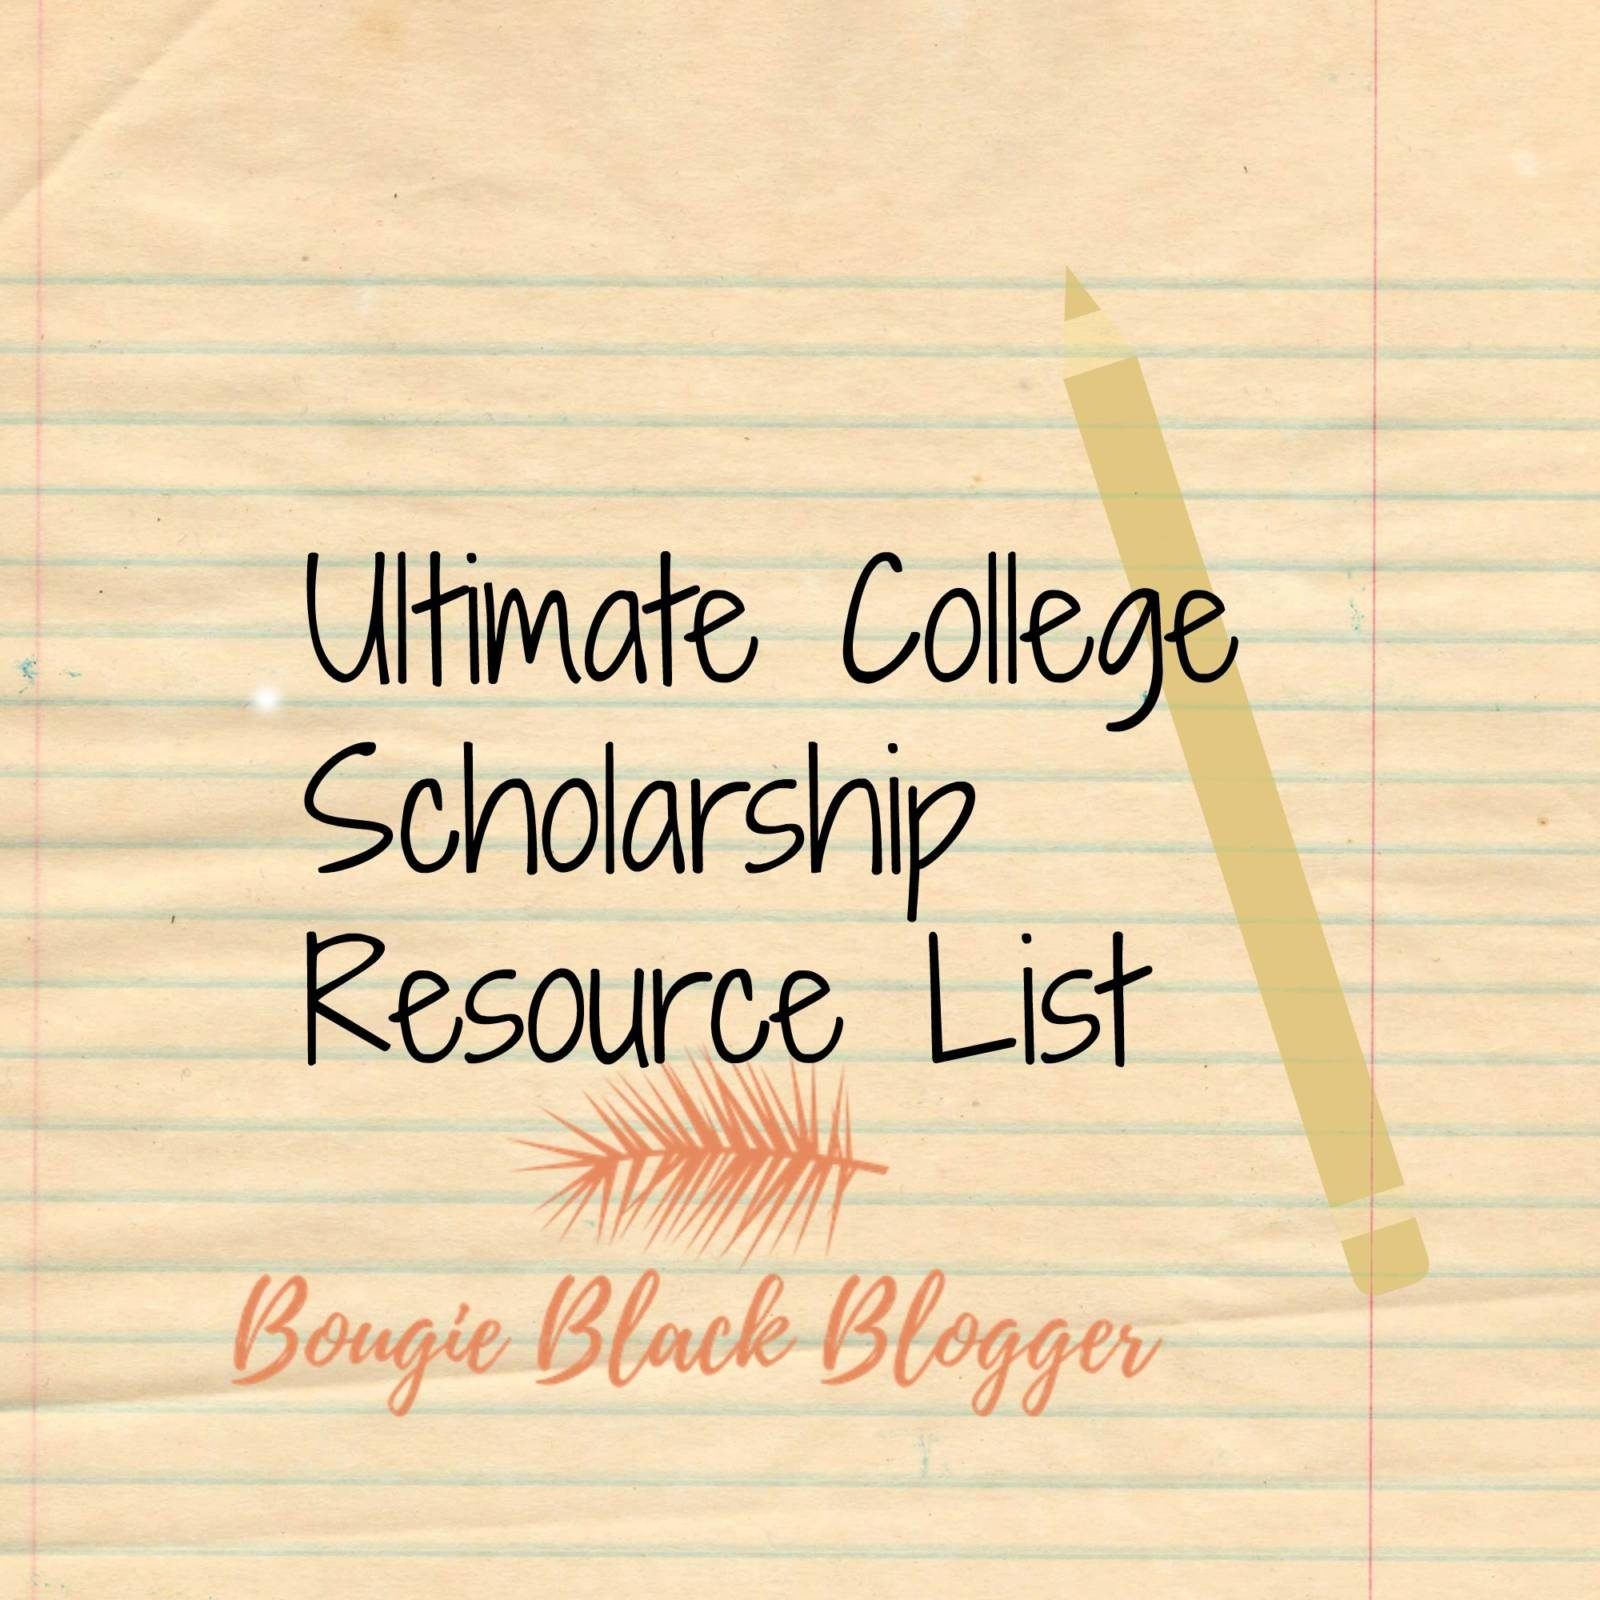 Bougie Black Bloggers Ultimate Scholarship Resource List